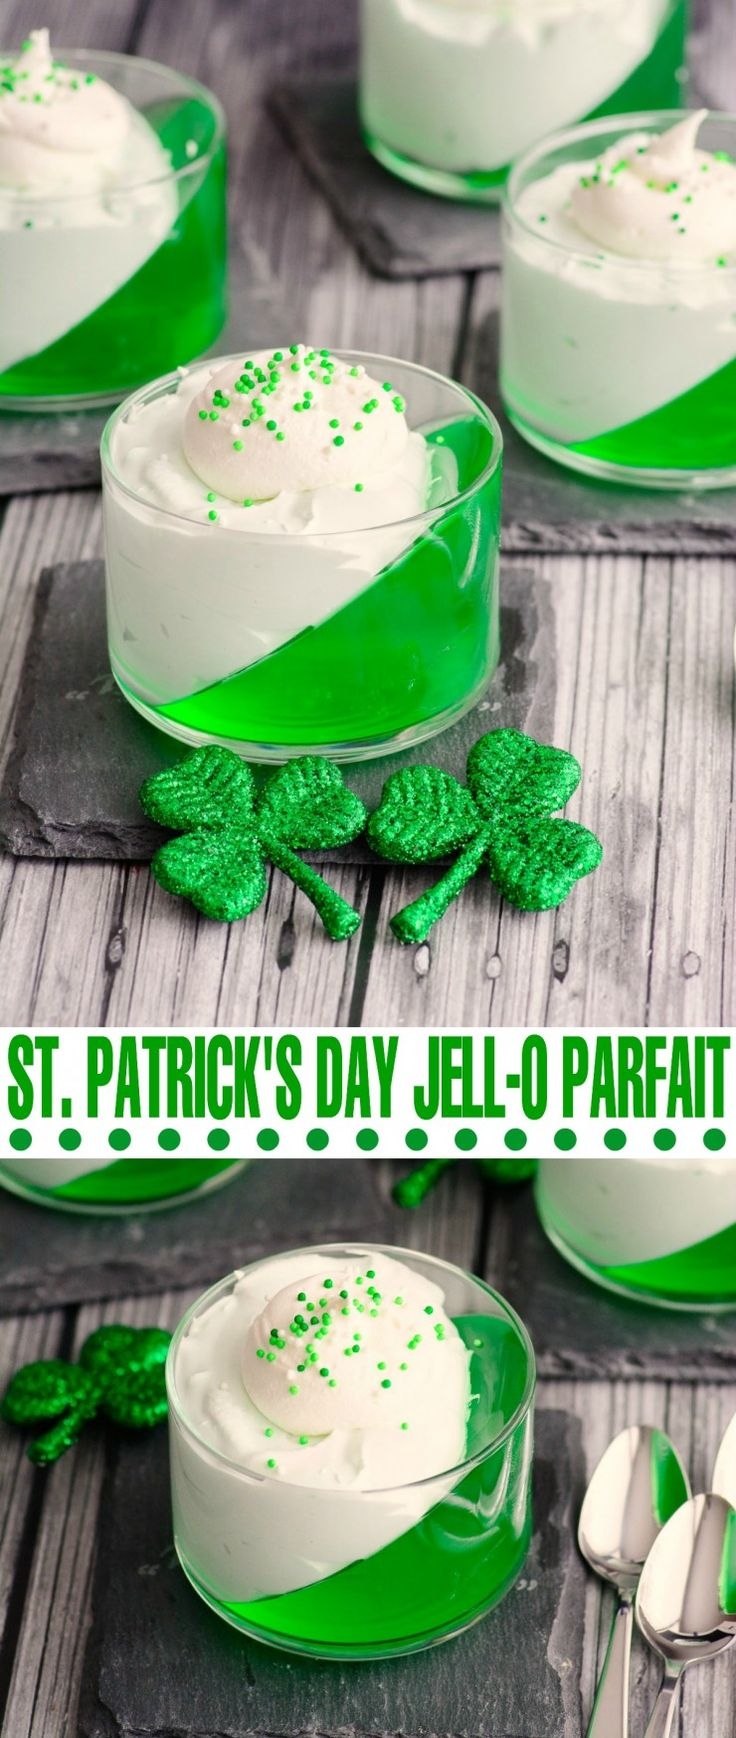 St. Patrick's Day Jell-o Parfait- so simple to make but it looks absolutely stunning!